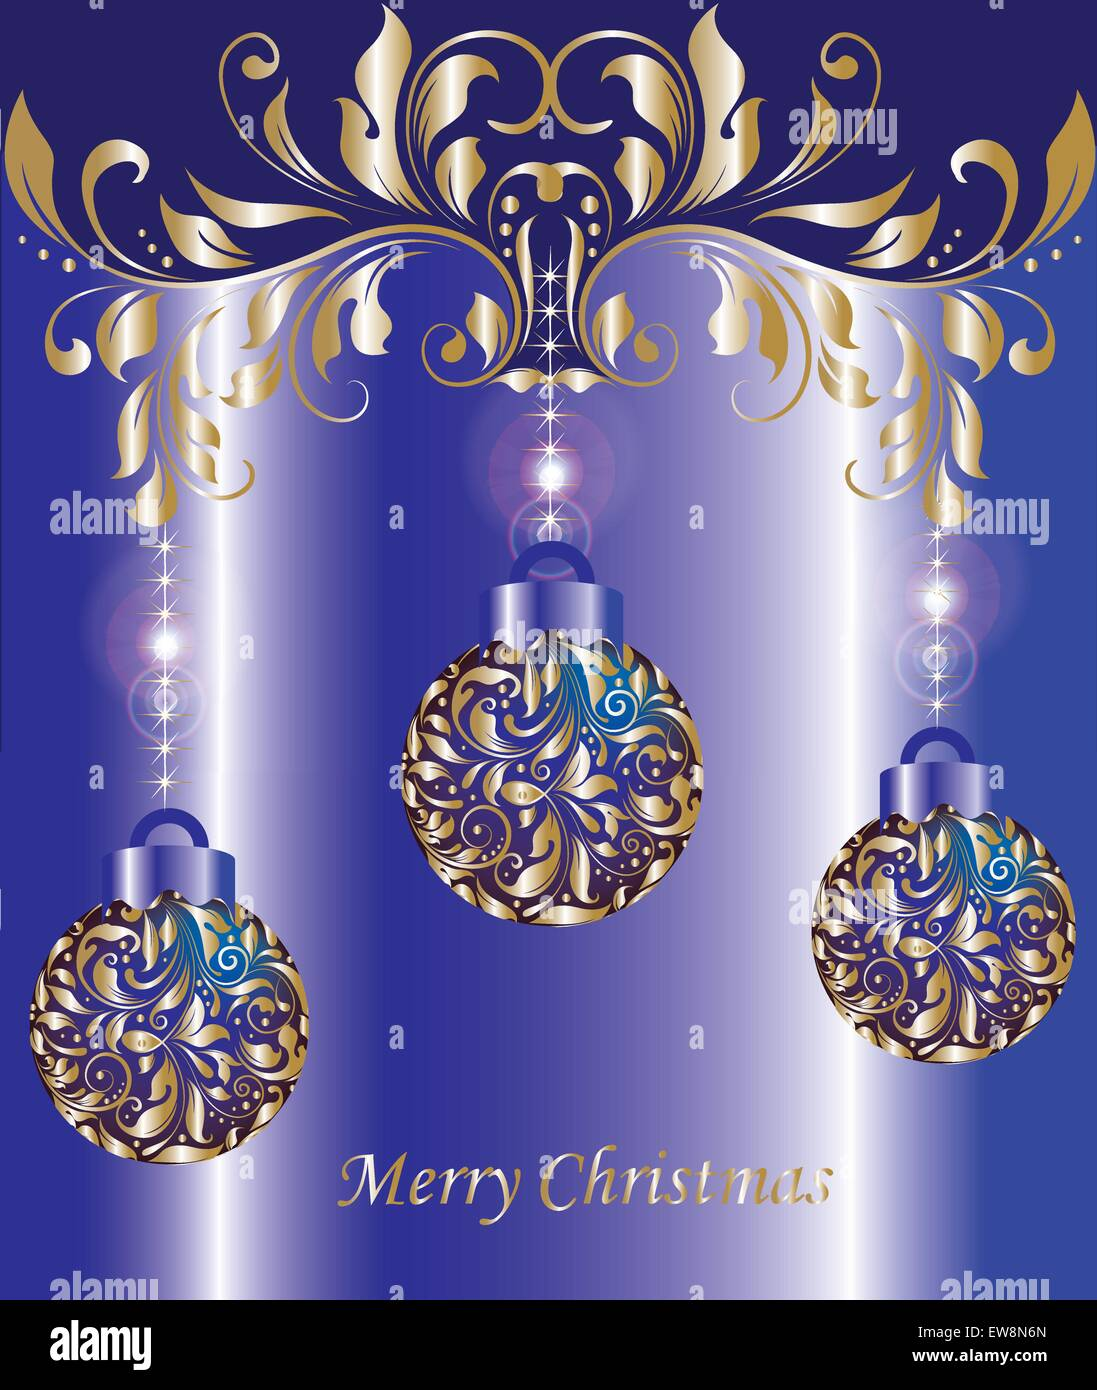 Vintage Christmas Card With Ornate Elegant Abstract Floral Design, Shiny  Gold Balls And Flowers On Royal Blue Background. Vector Illustration.